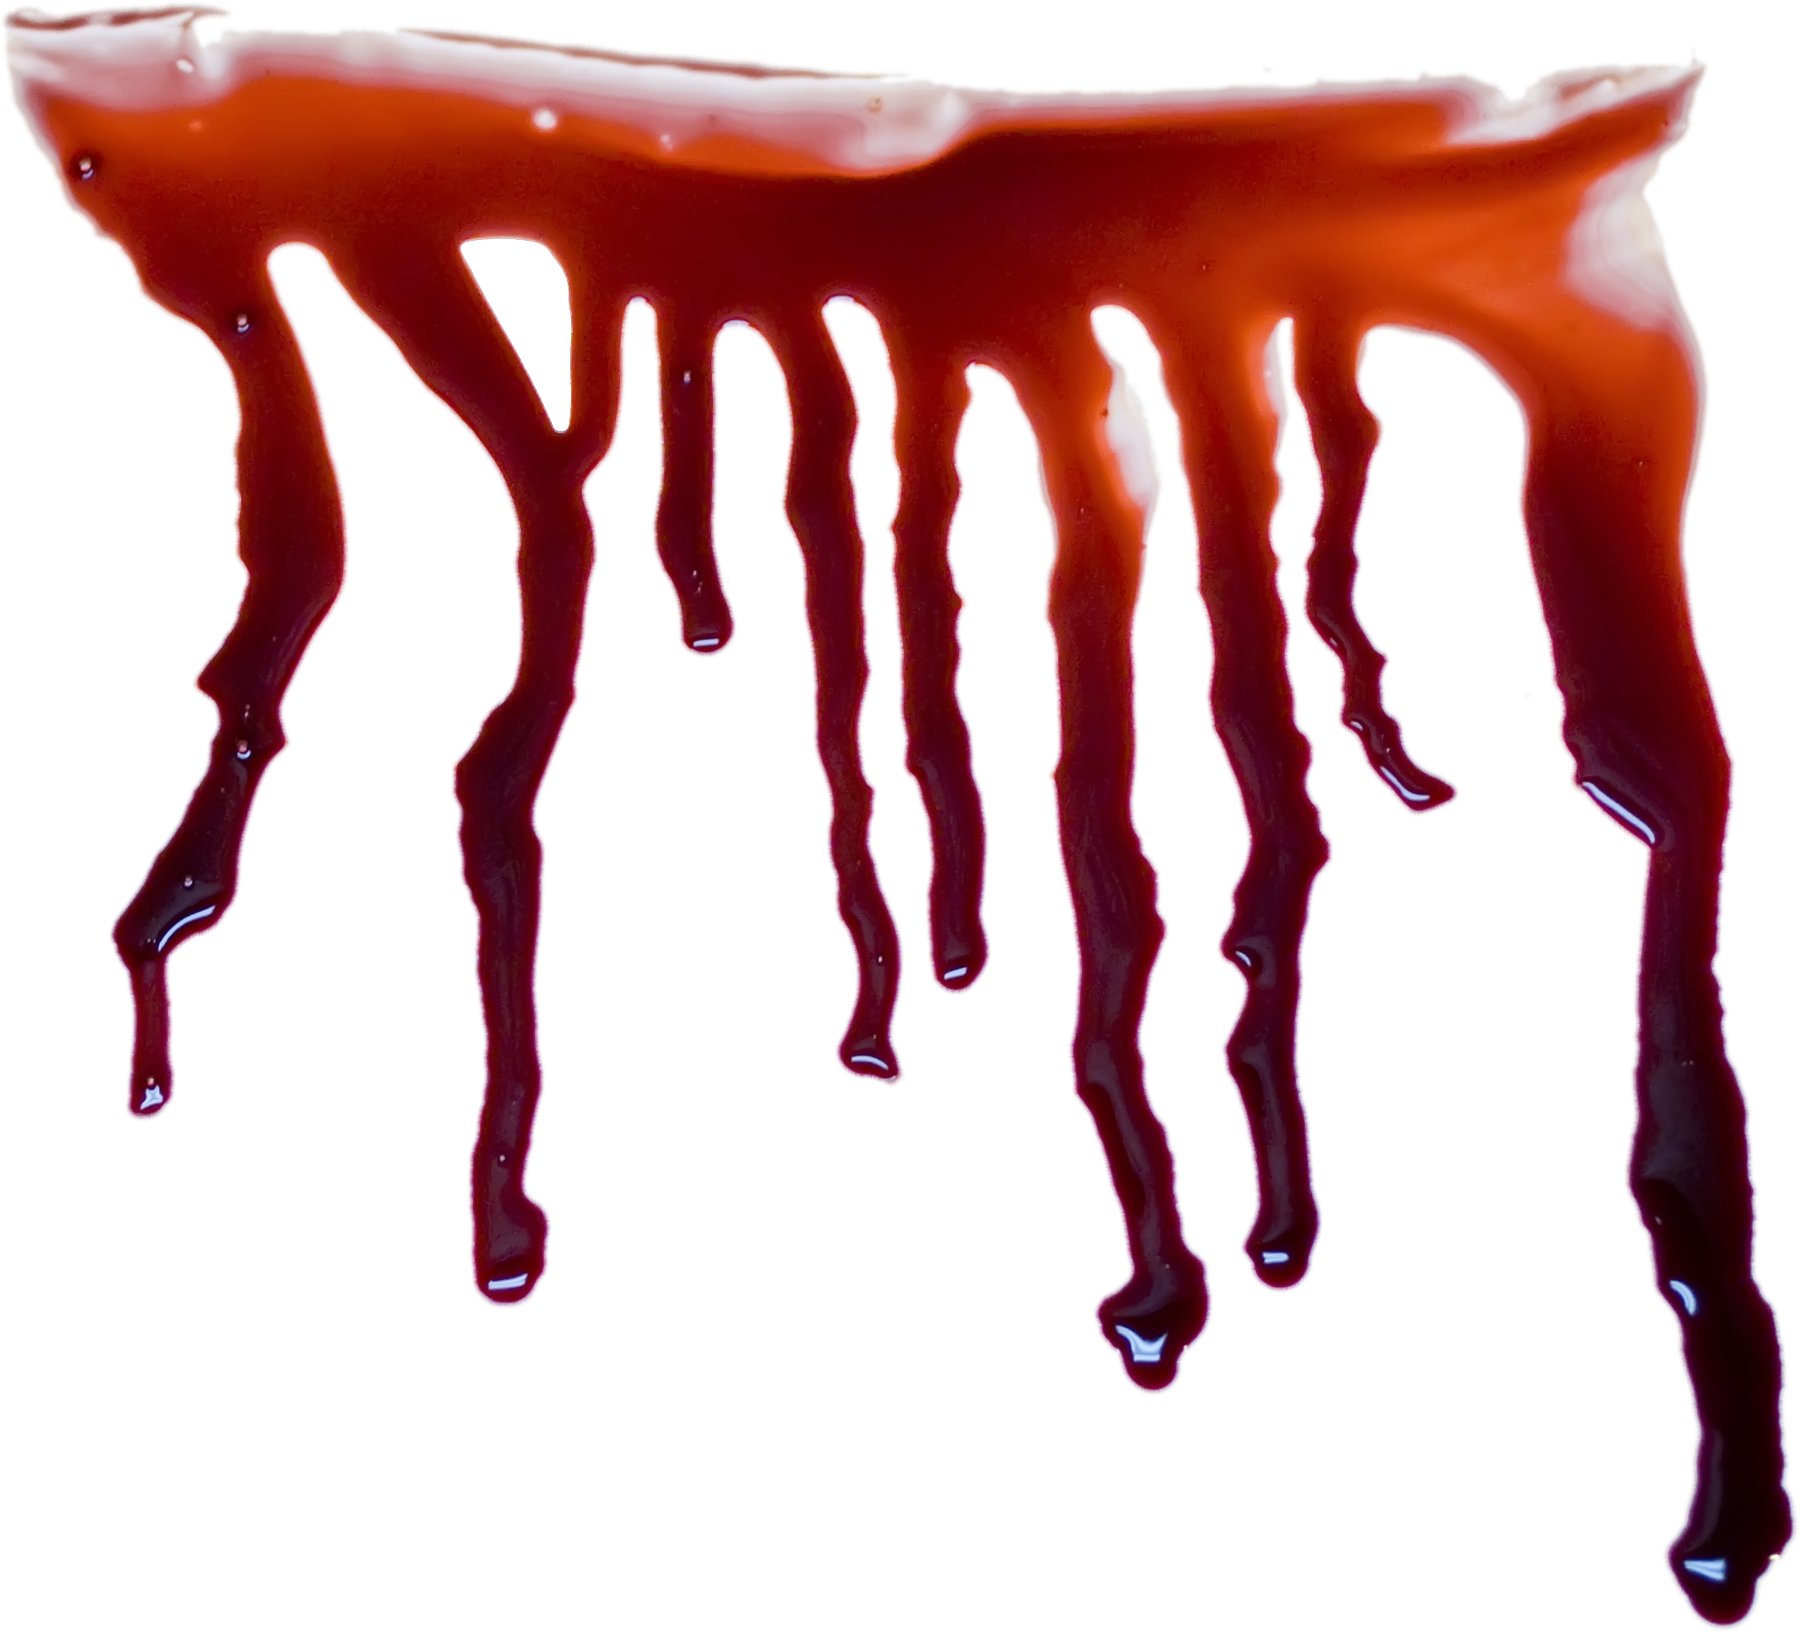 Blood mouth png. Images free download splashes